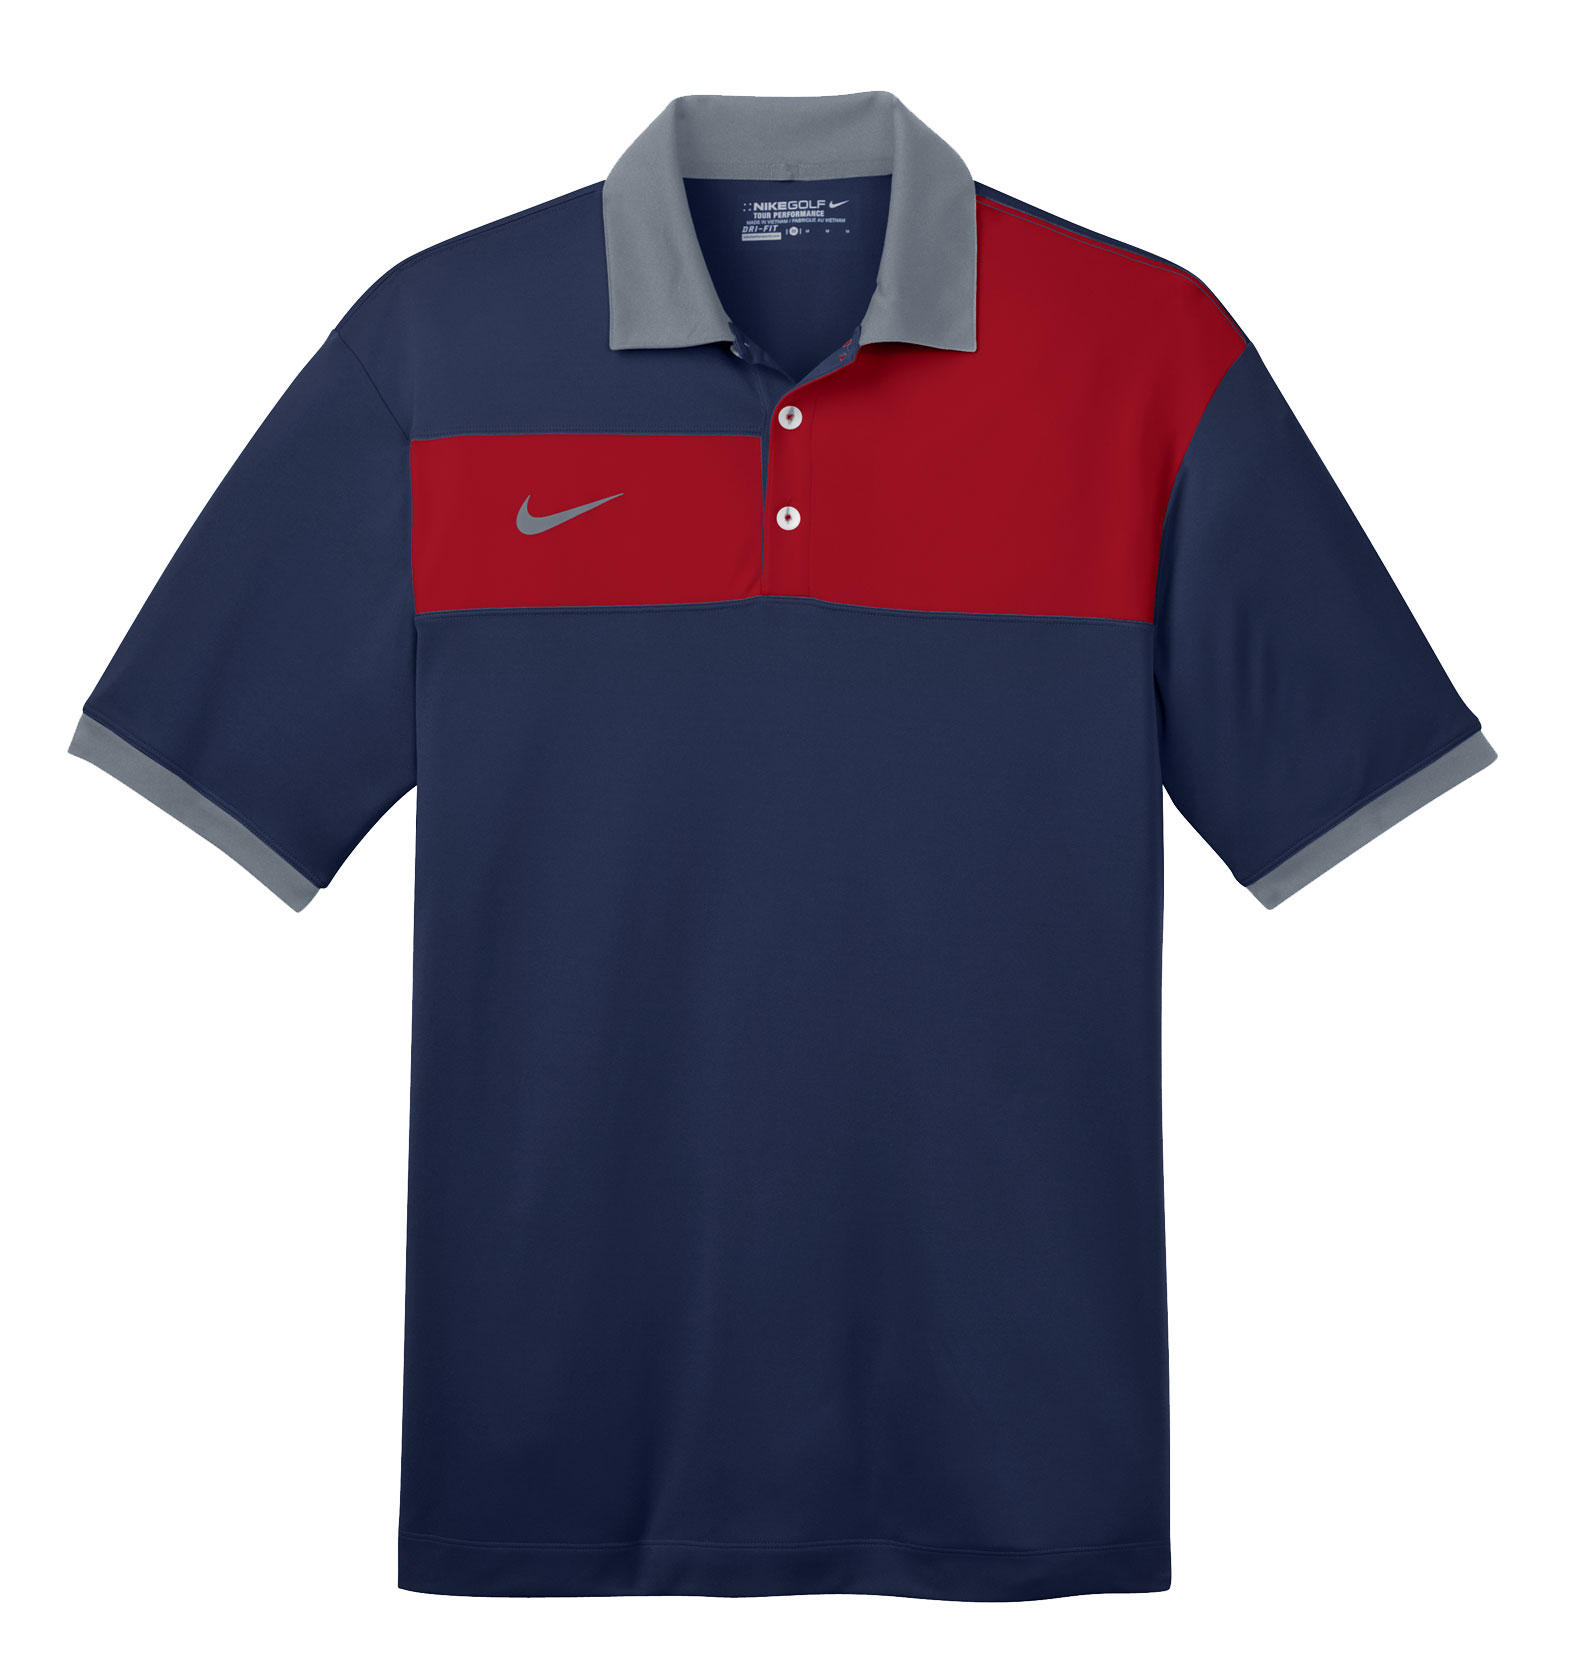 Nike Golf Dri-FIT Sport Colorblock Polo